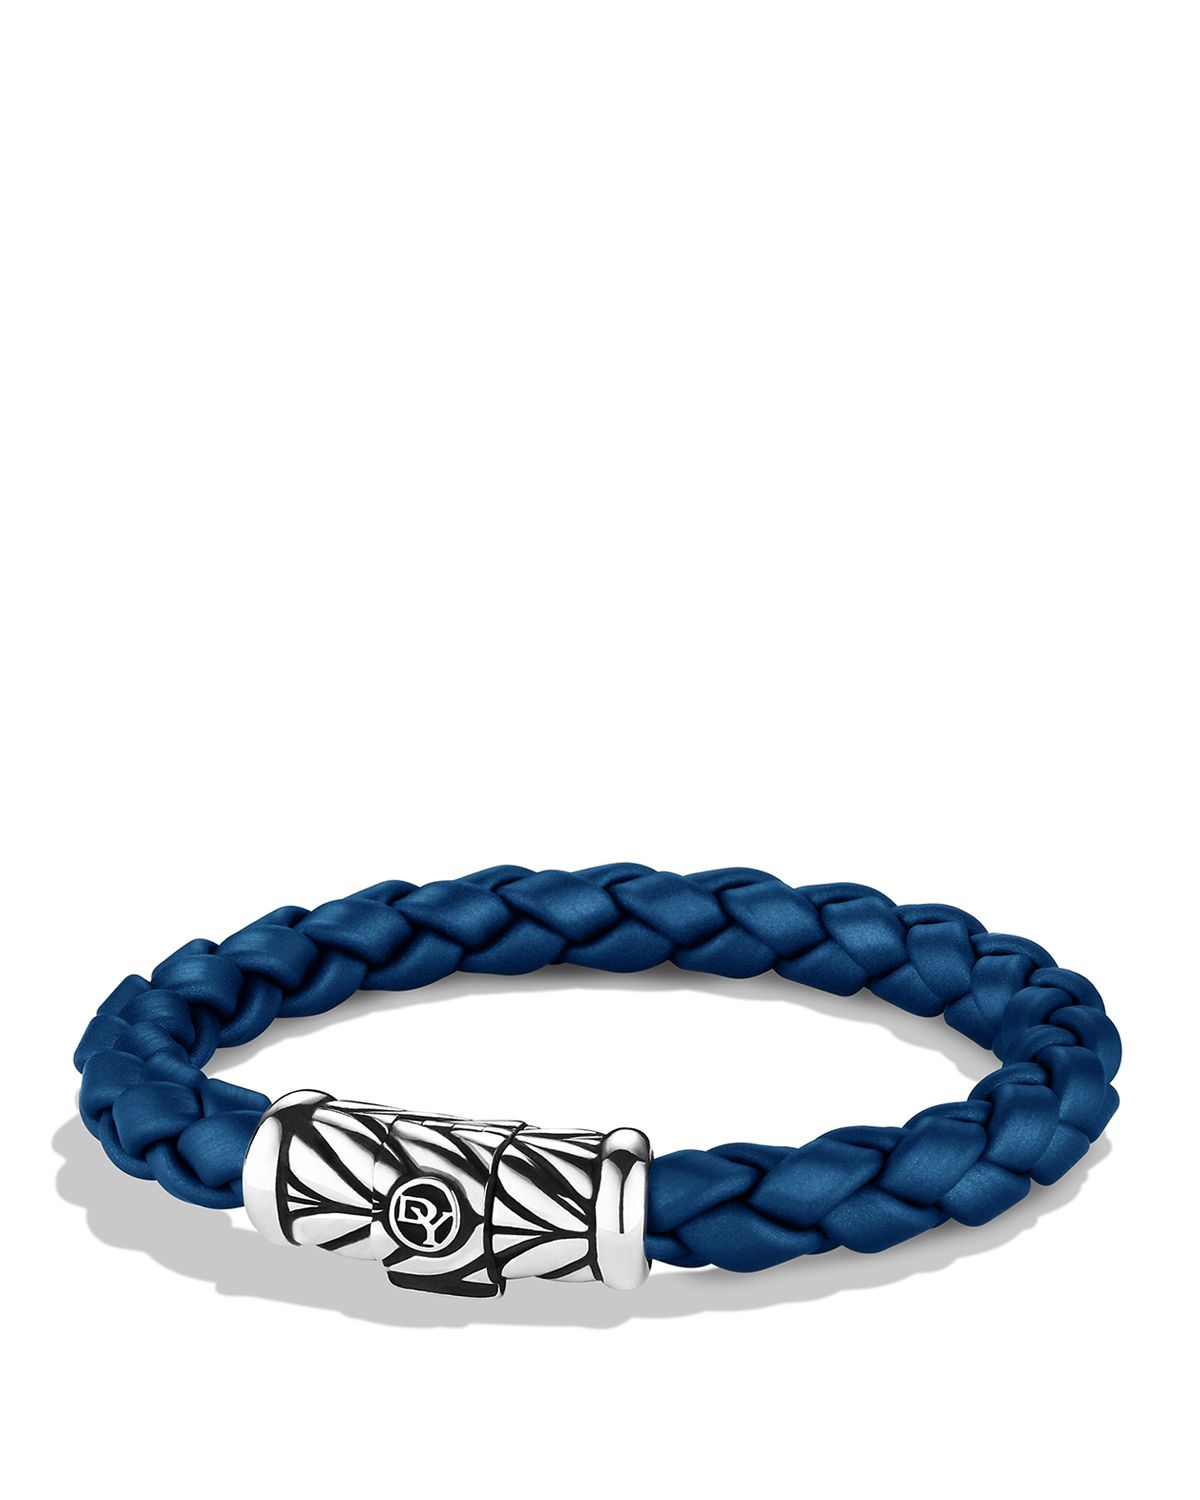 david yurman chevron bracelet in blue in metallic for